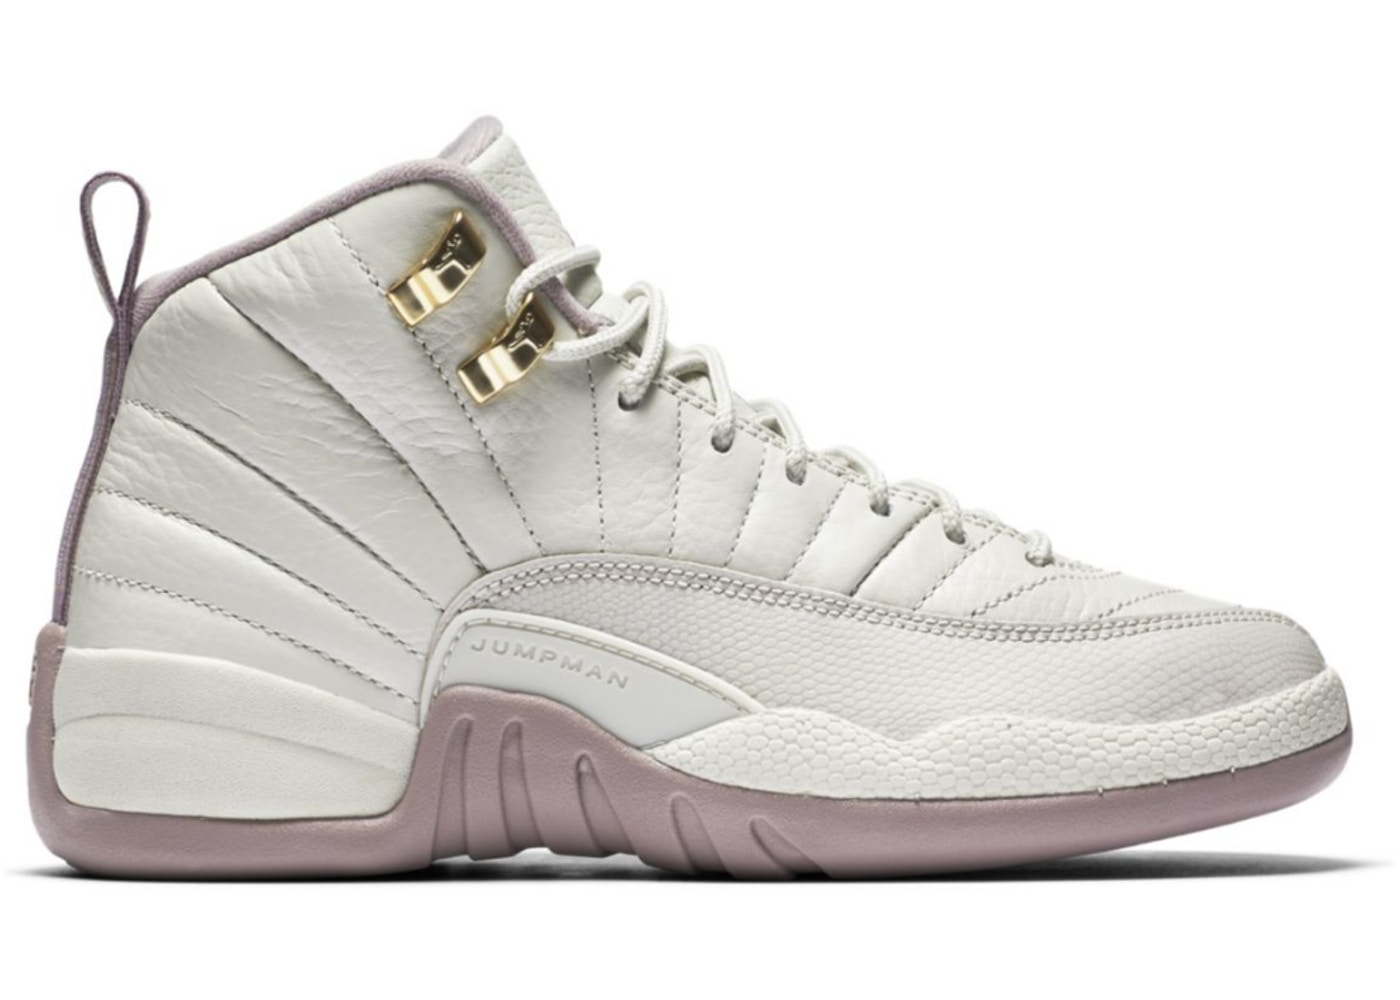 brand new a040e fe66f Jordan 12 Retro Heiress Plum Fog (GS)